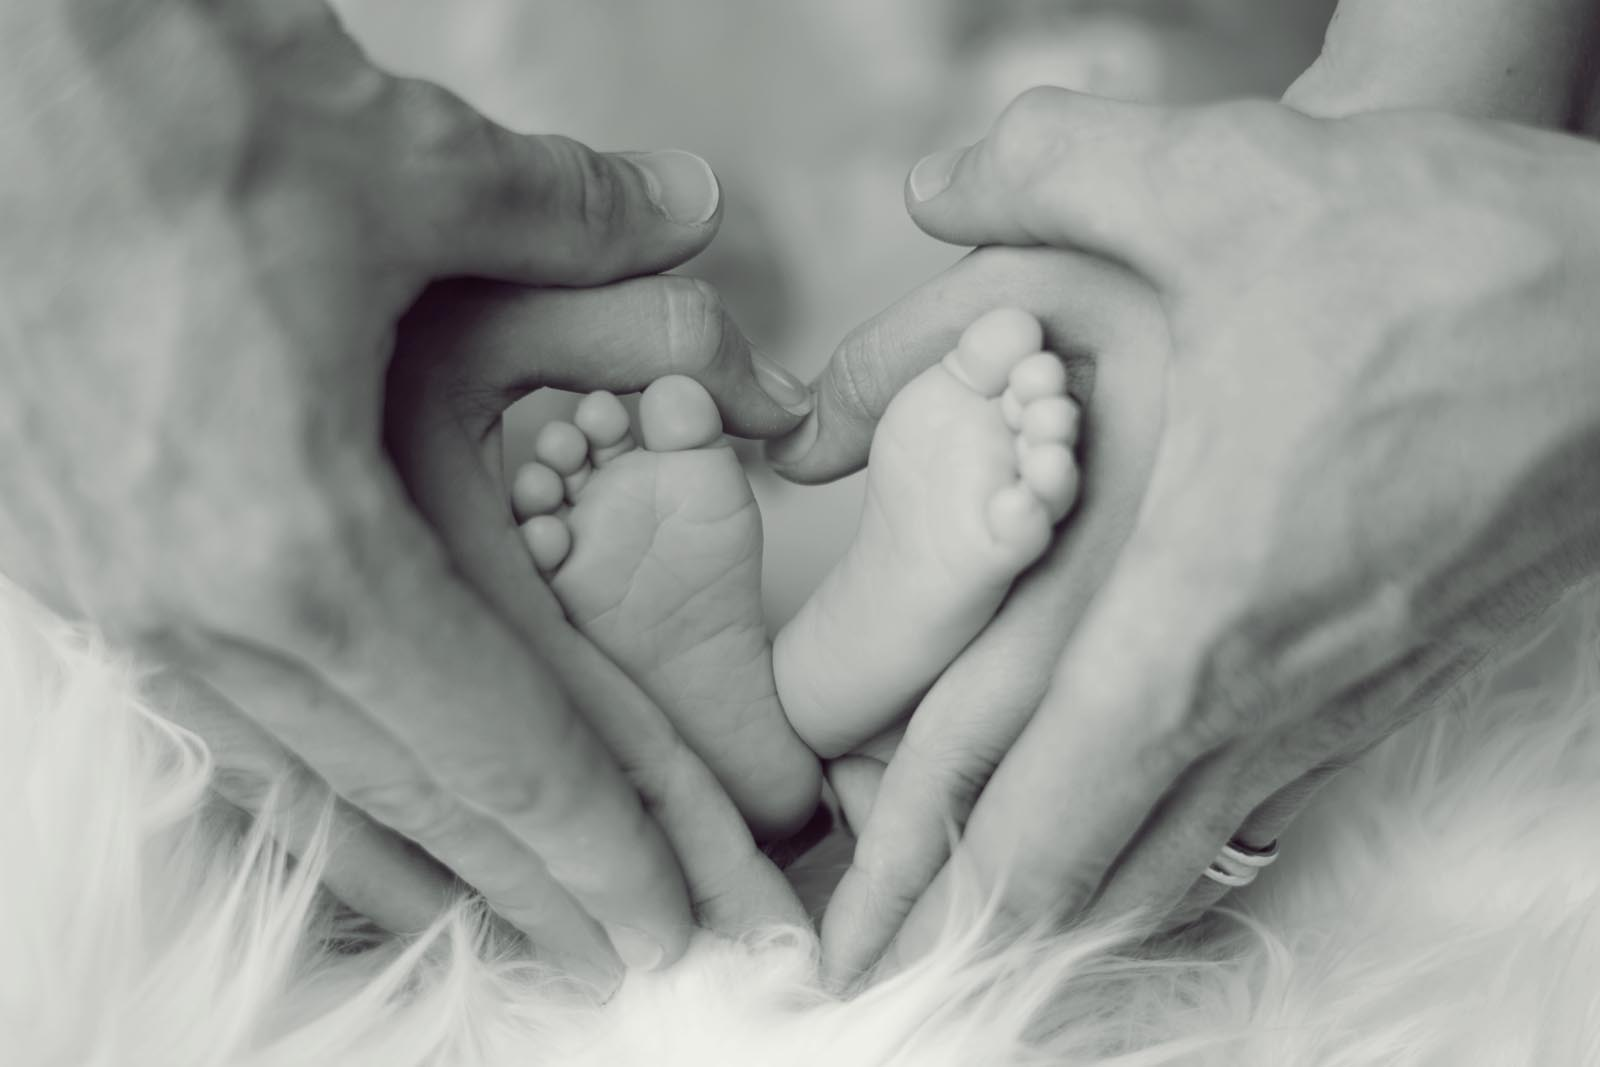 Baby and newborn photographers Belfast -  baby feet with father and mother hands 733881